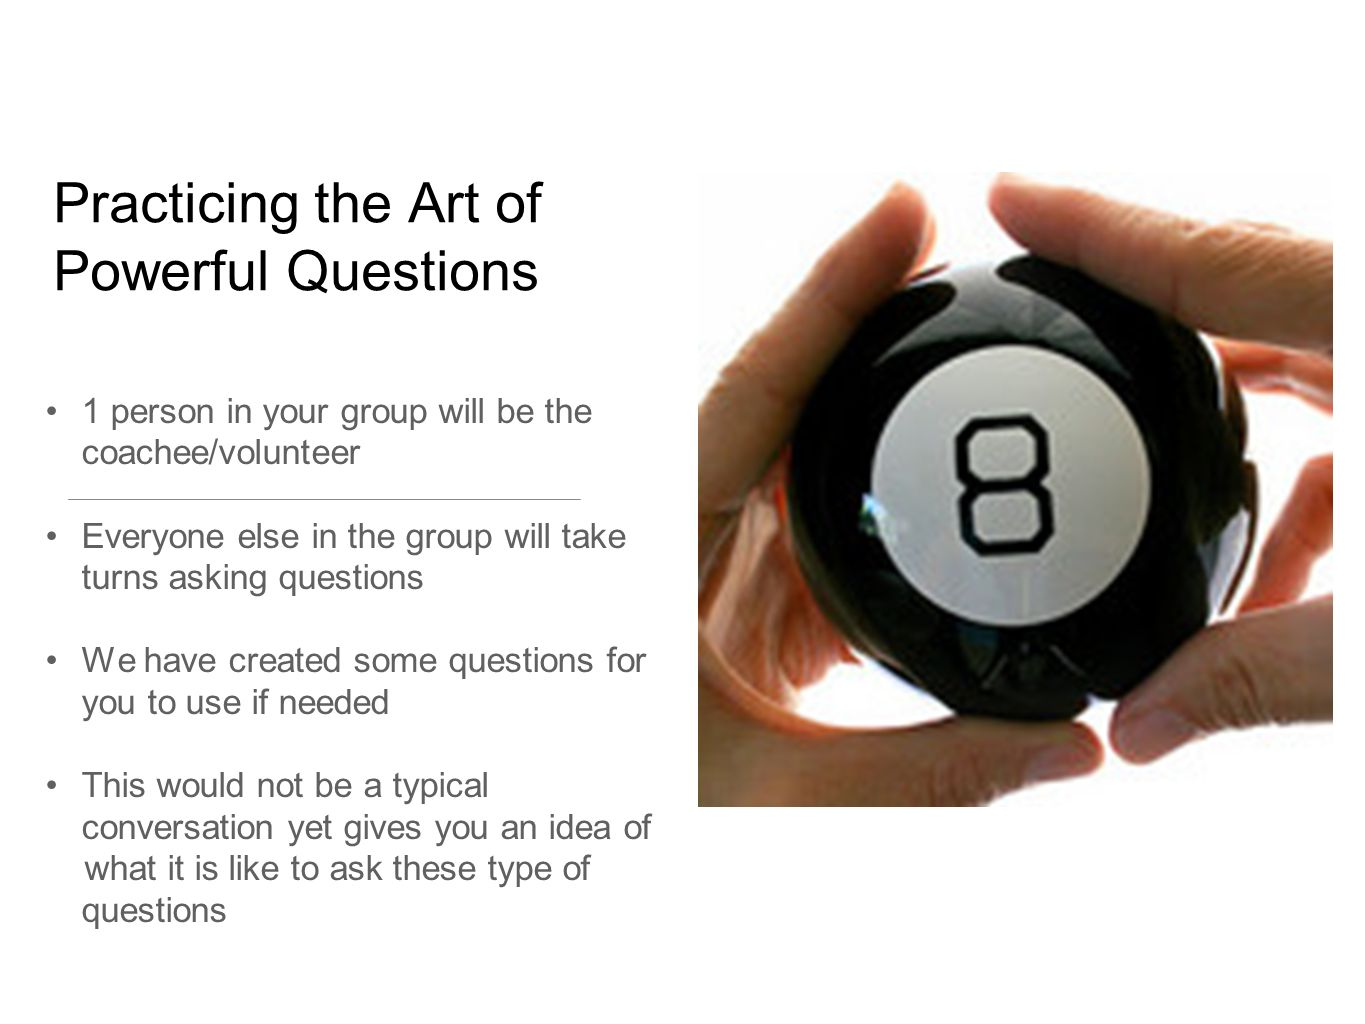 Practicing the Art of Powerful Questions 1 person in your group will be the coachee/volunteer Everyone else in the group will take turns asking questions We have created some questions for you to use if needed This would not be a typical conversation yet gives you an idea of what it is like to ask these type of questions